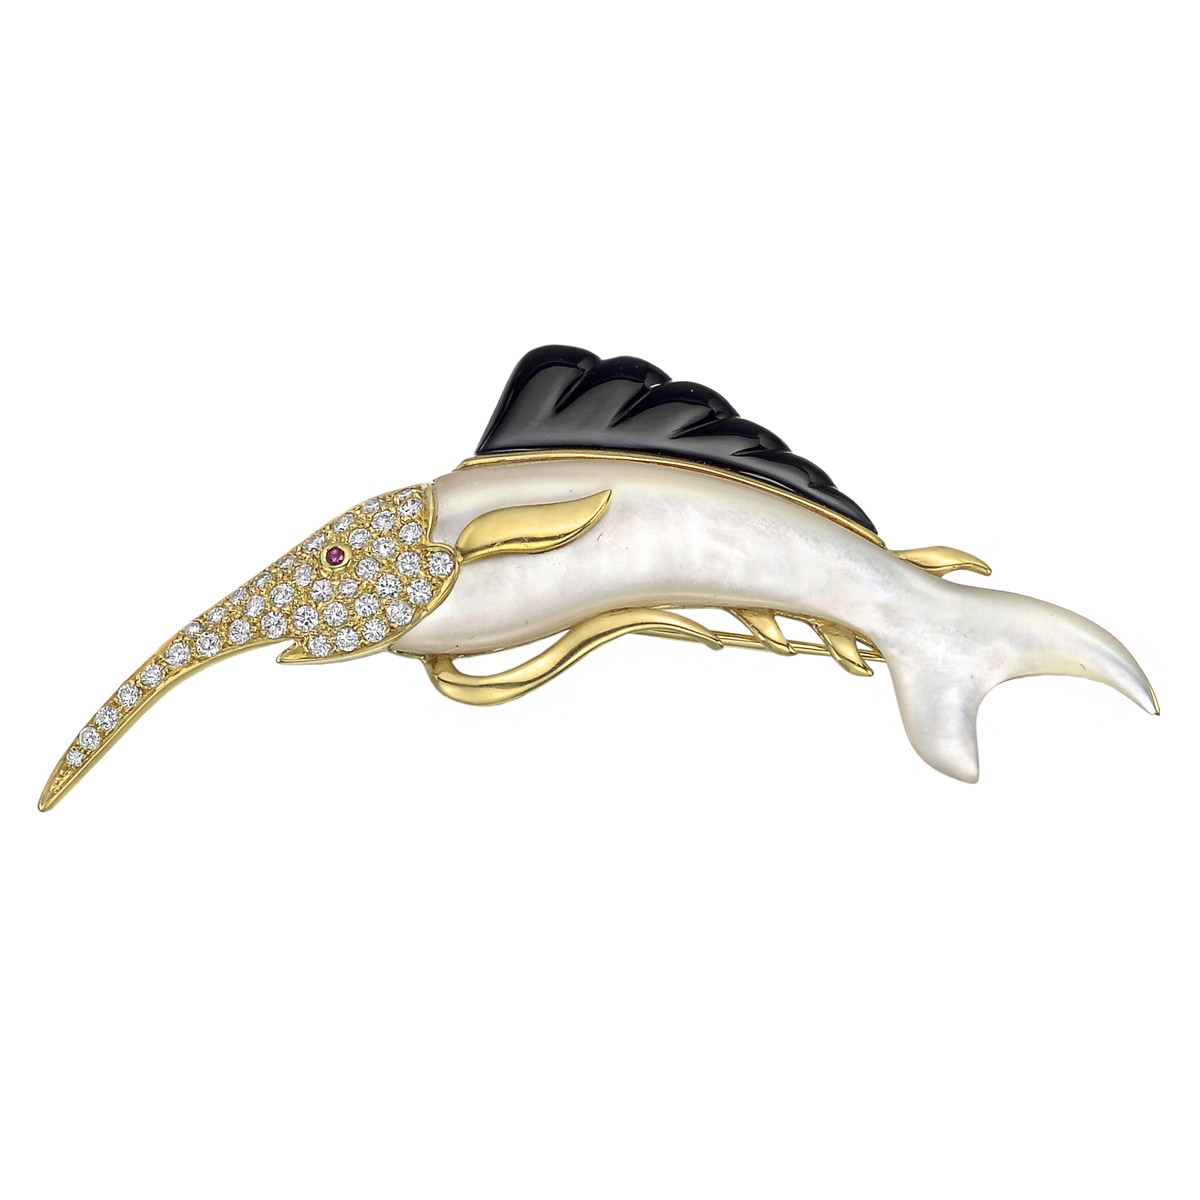 Mother-of-Pearl, Onyx & Diamond Swordfish Pin